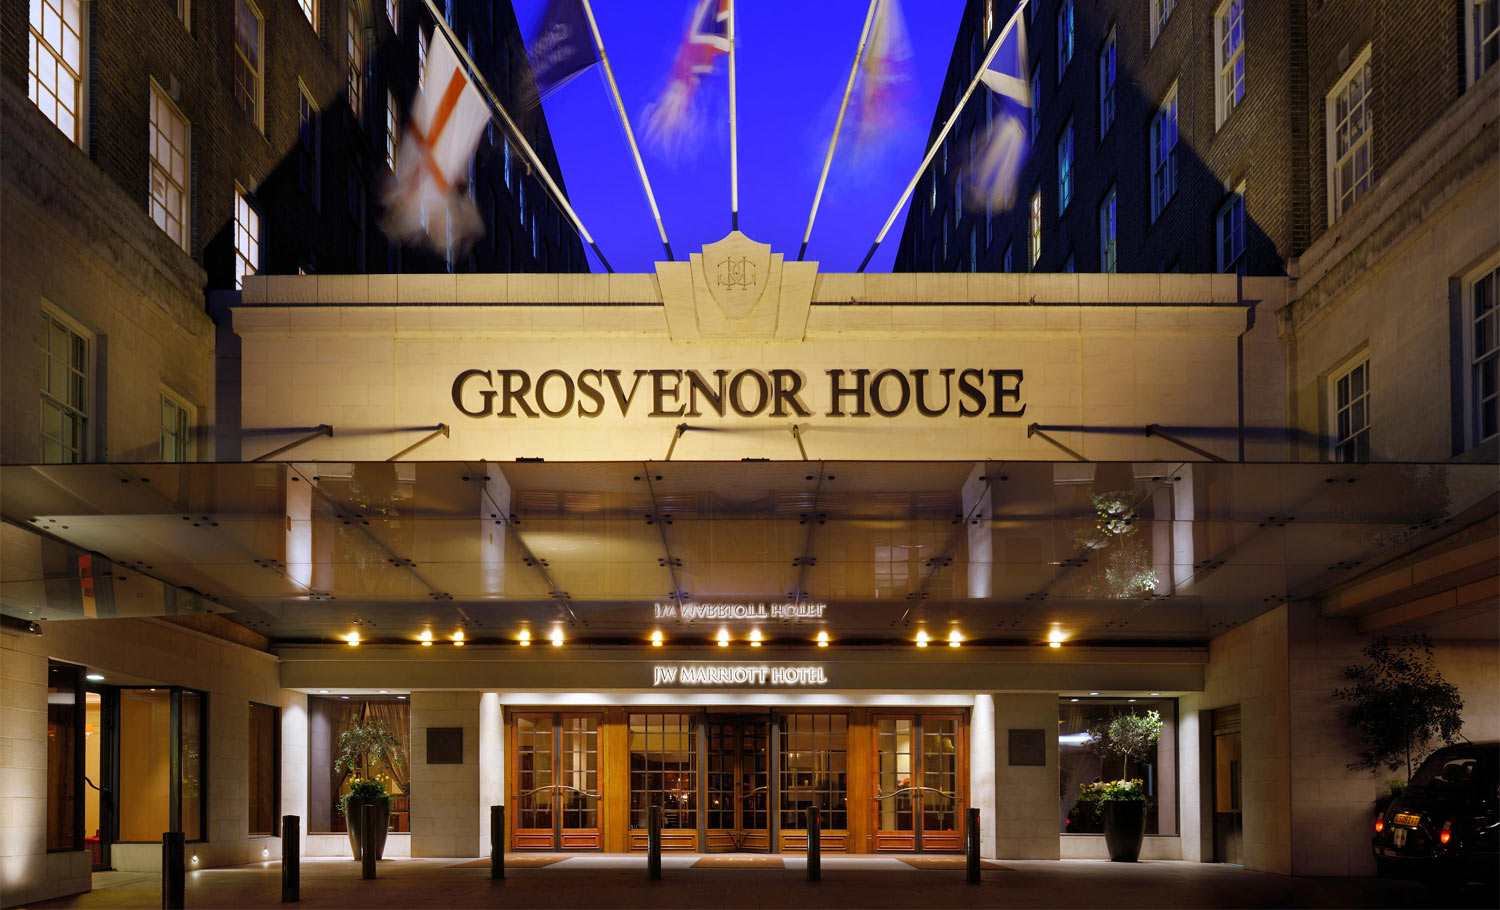 The Grosvenor House Ballroom